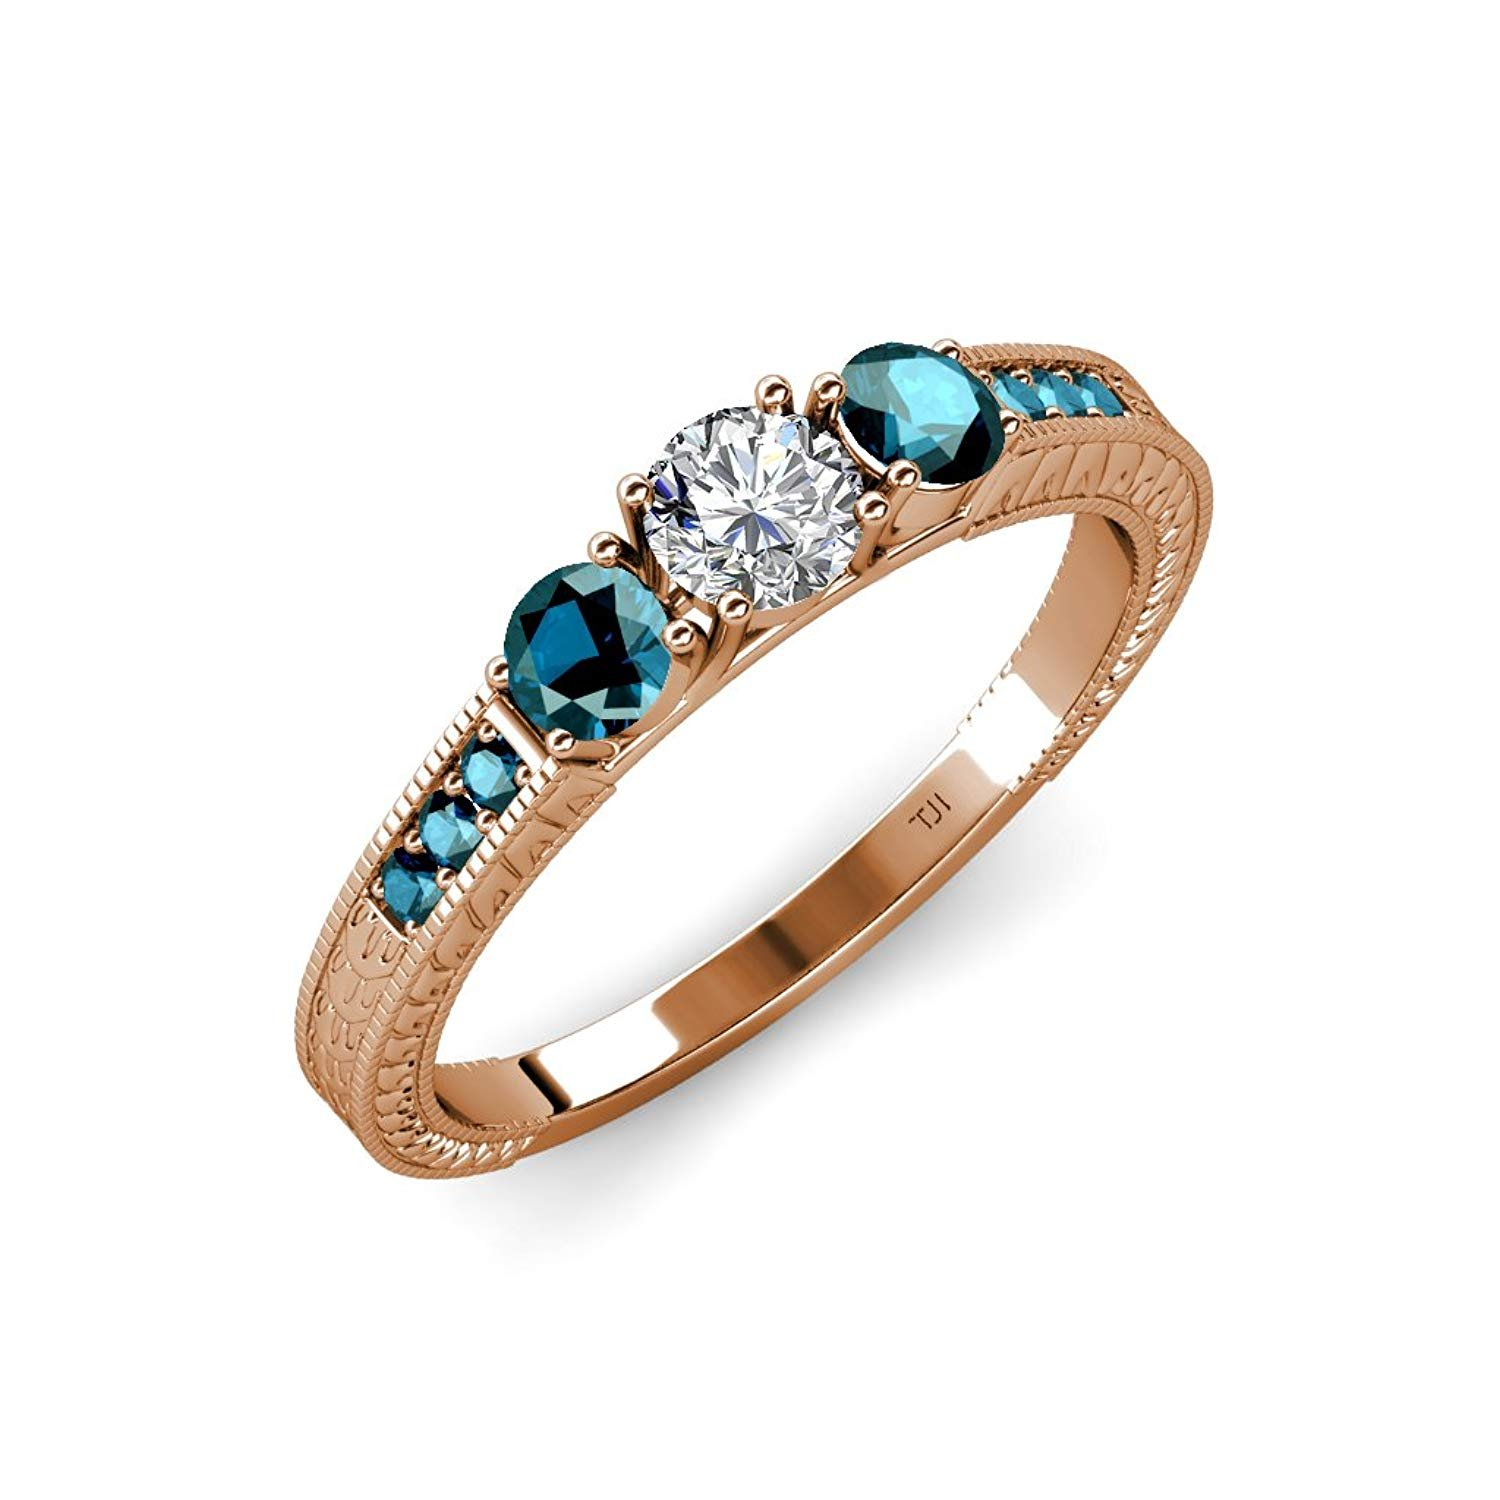 Blue and White Diamond 3 Stone Ring with Blue Diamond on Side Bar 0.84 ct tw in 14K Rose Gold.size 6.5 by TriJewels